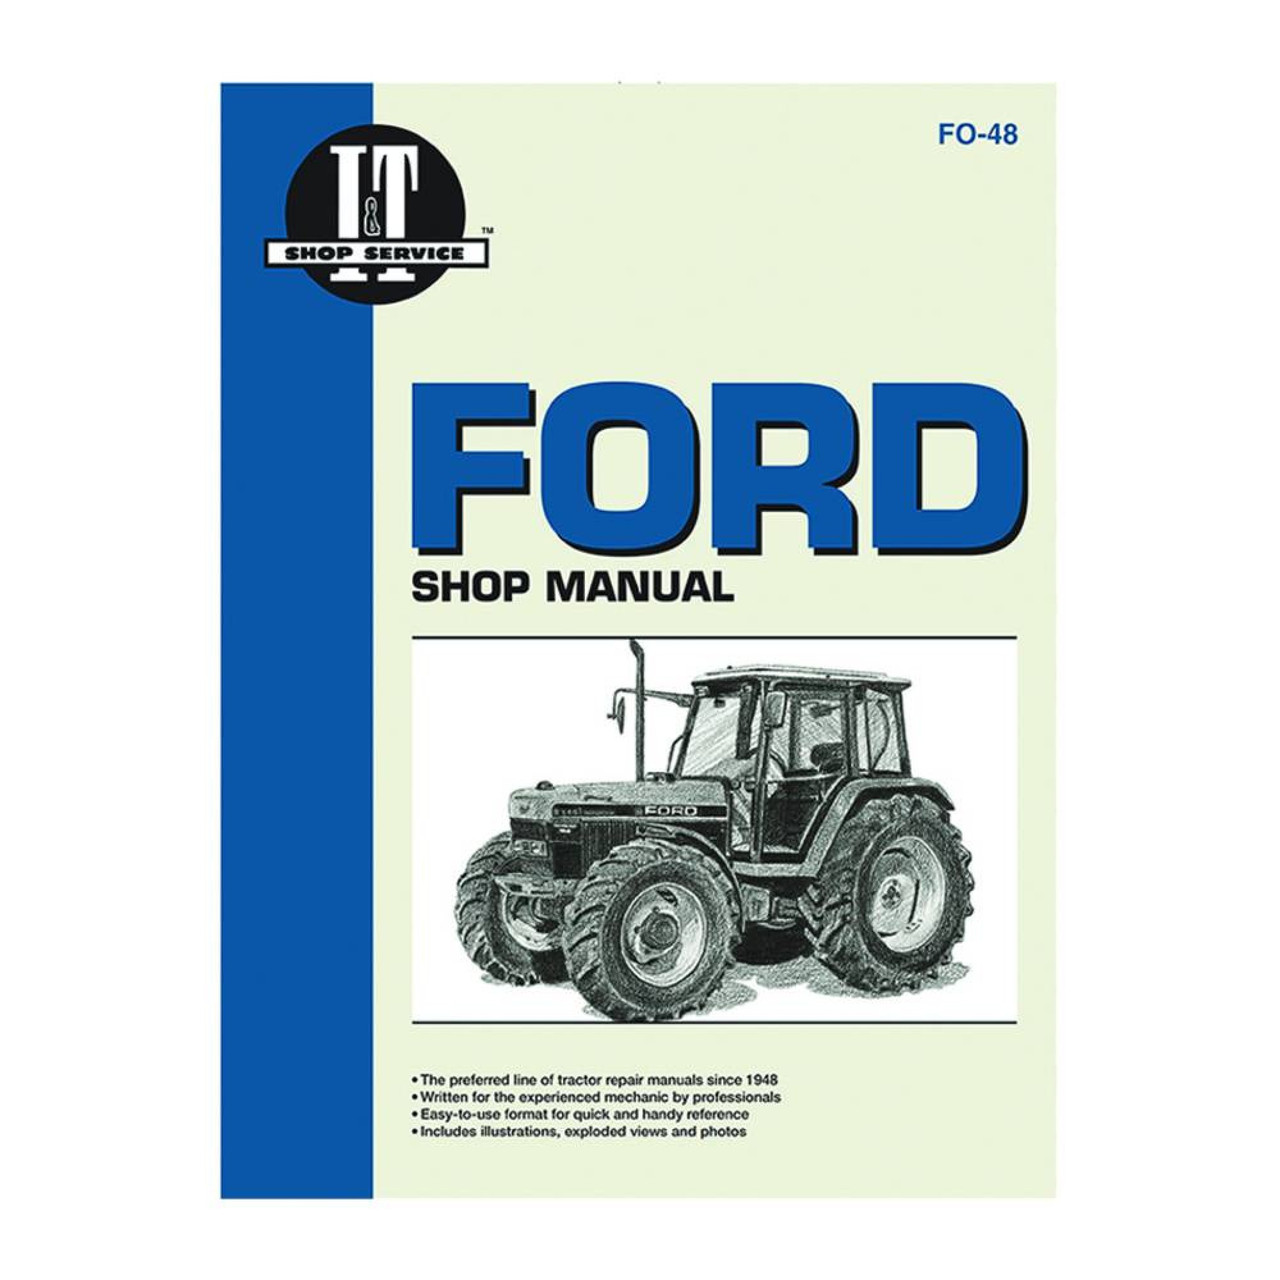 Wiring Diagram Ford Tractor Along With New Holland Wiring Diagrams on